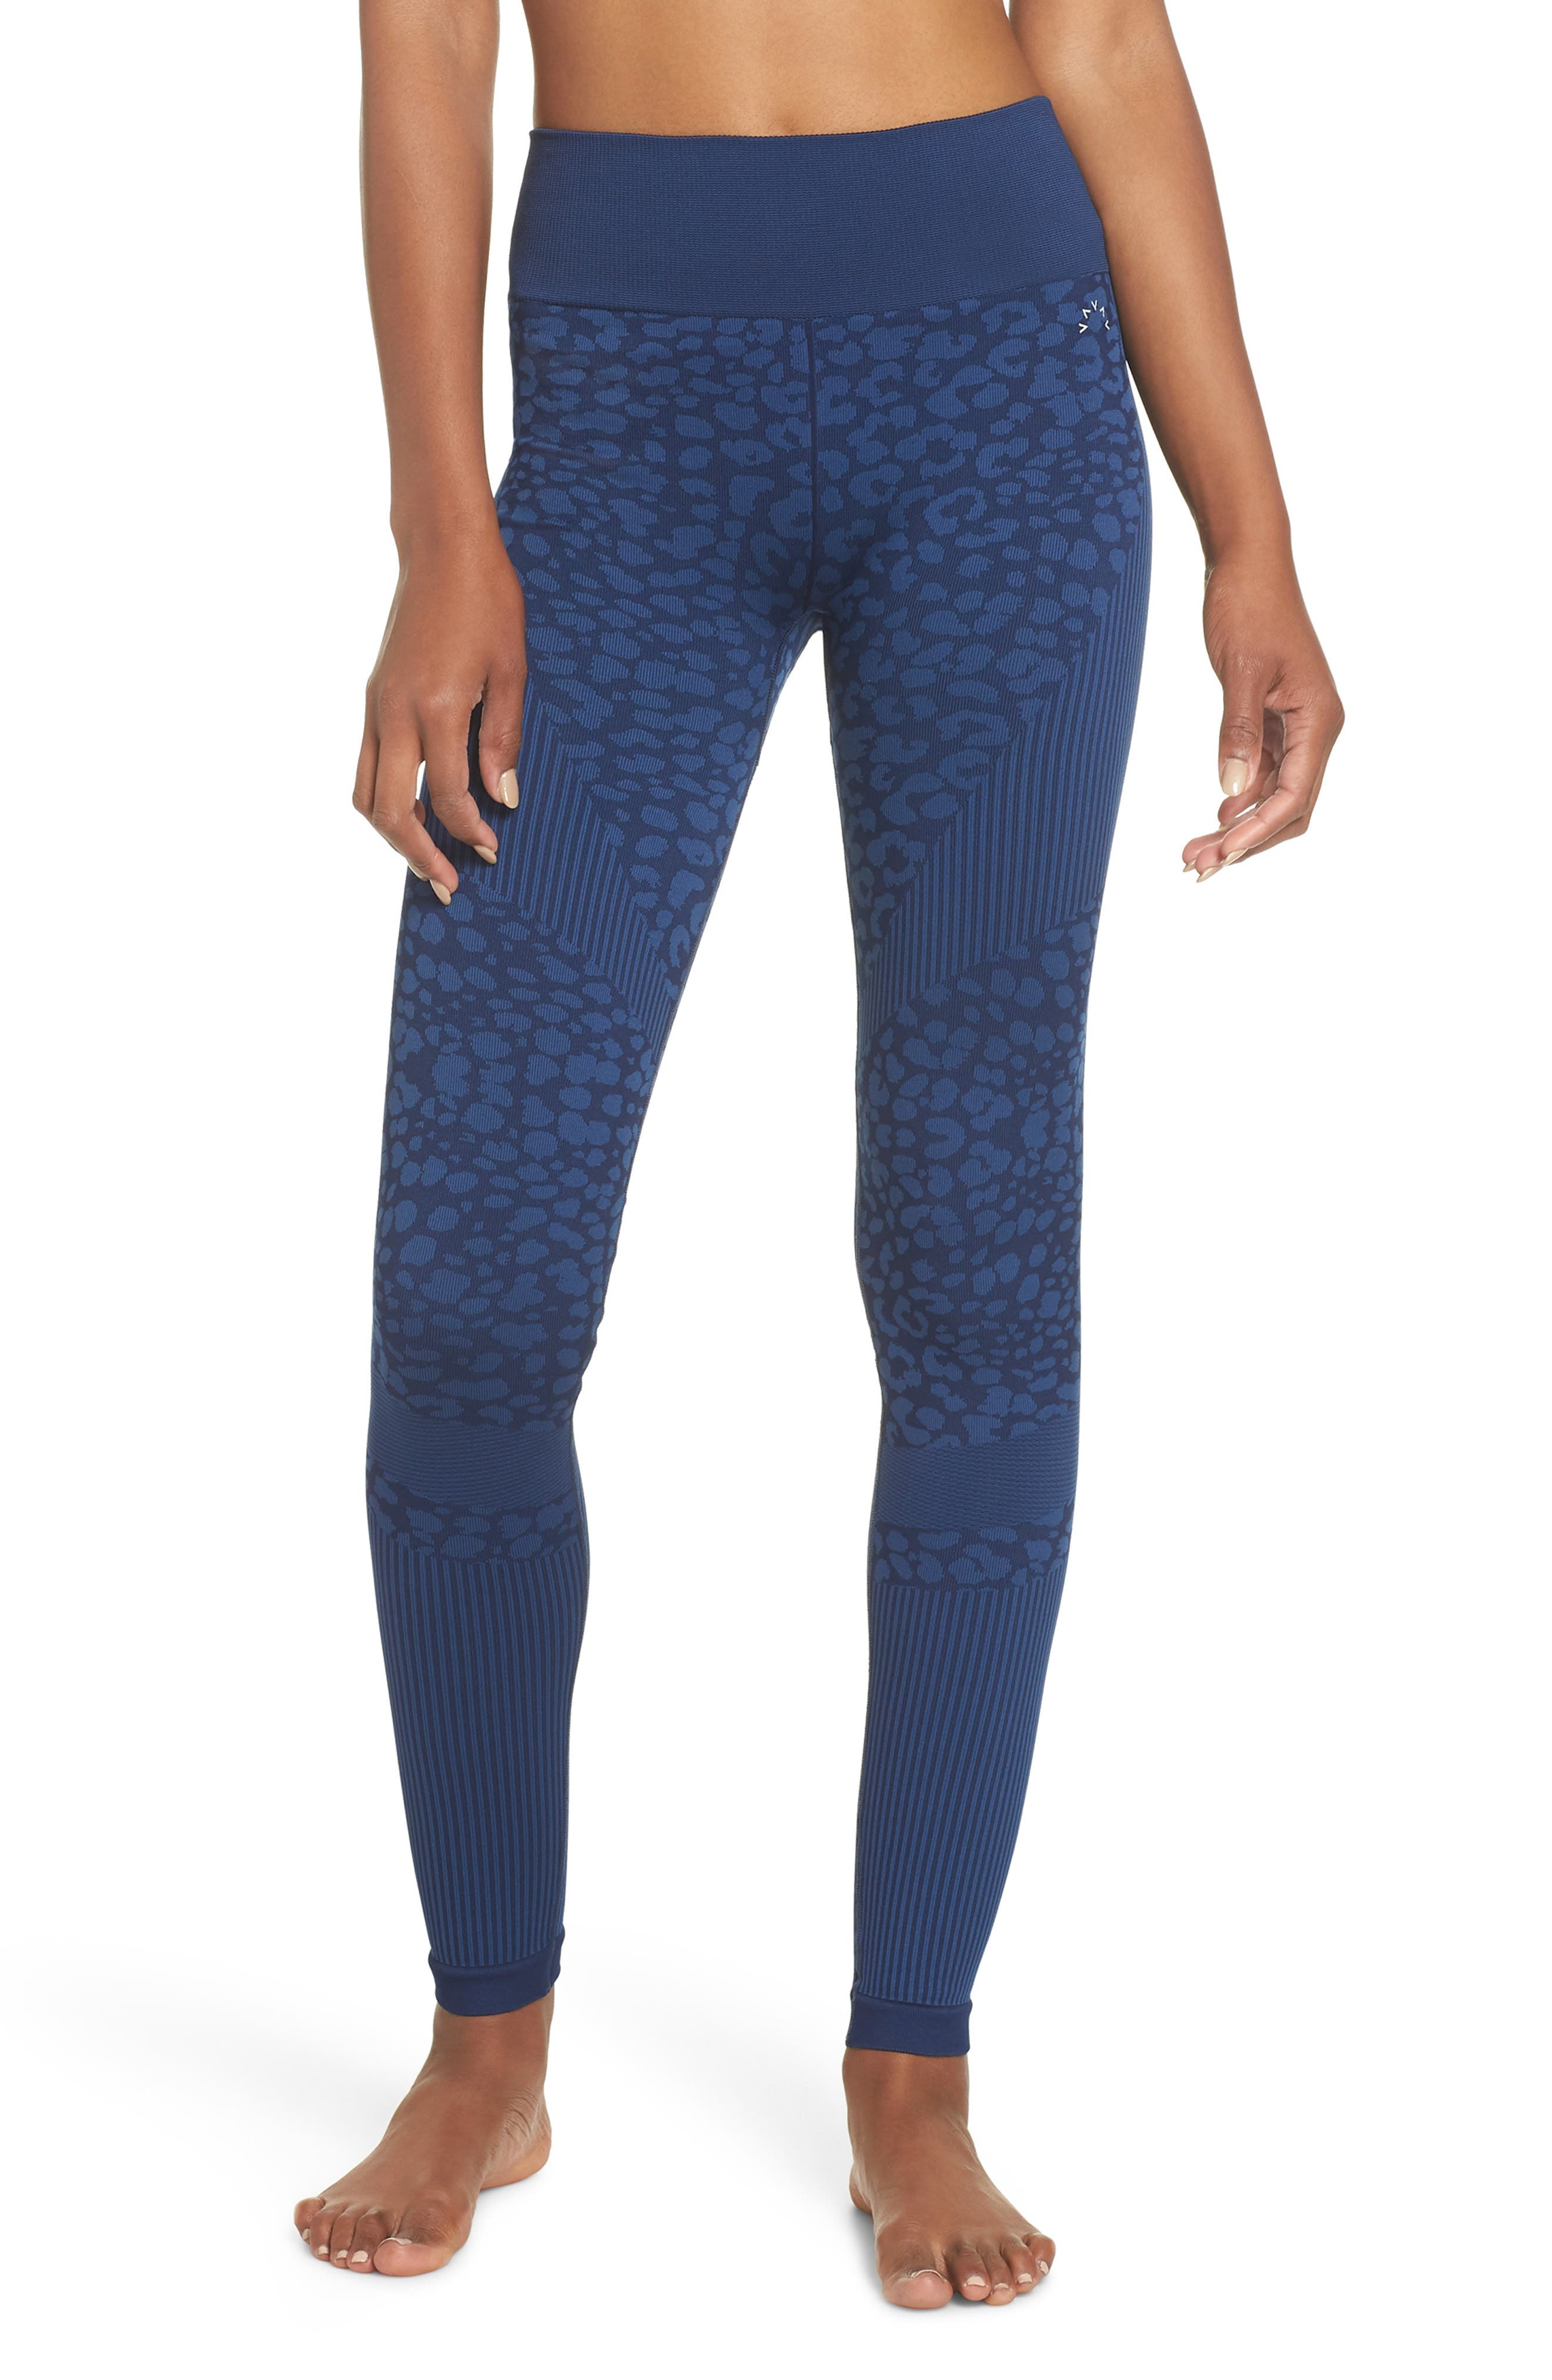 Quincy Seamless Leggings,                             Main thumbnail 1, color,                             NAVY LEOPARD